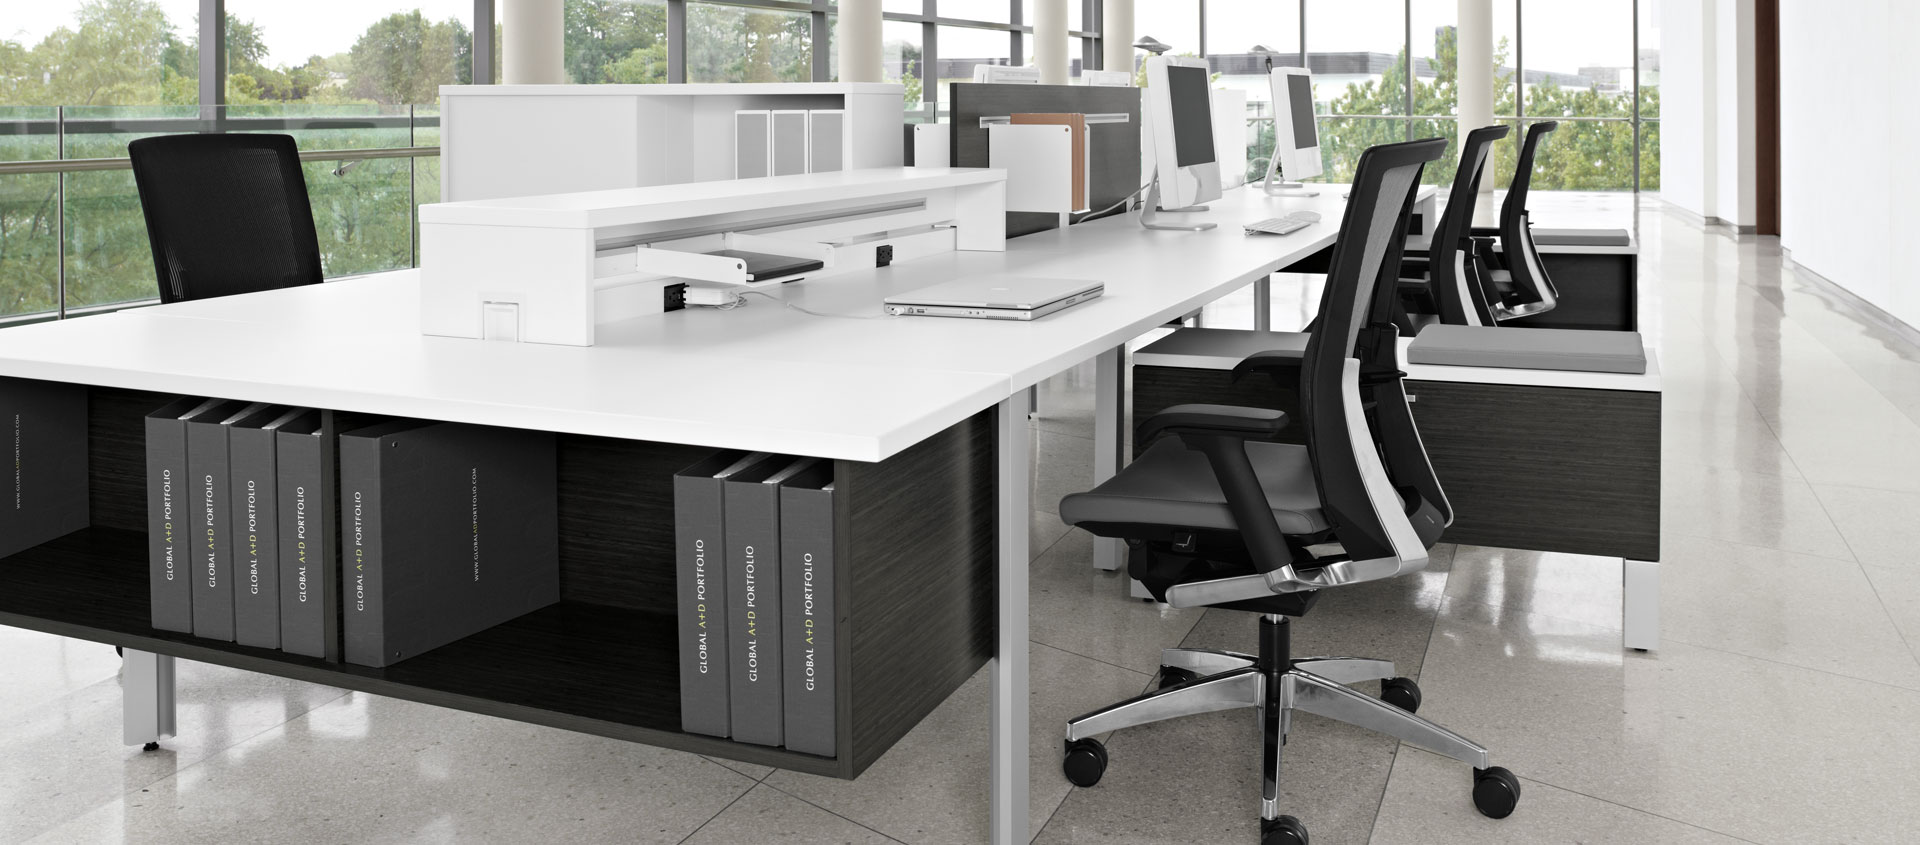 Office Workstations Modular Furniture For Offices Global